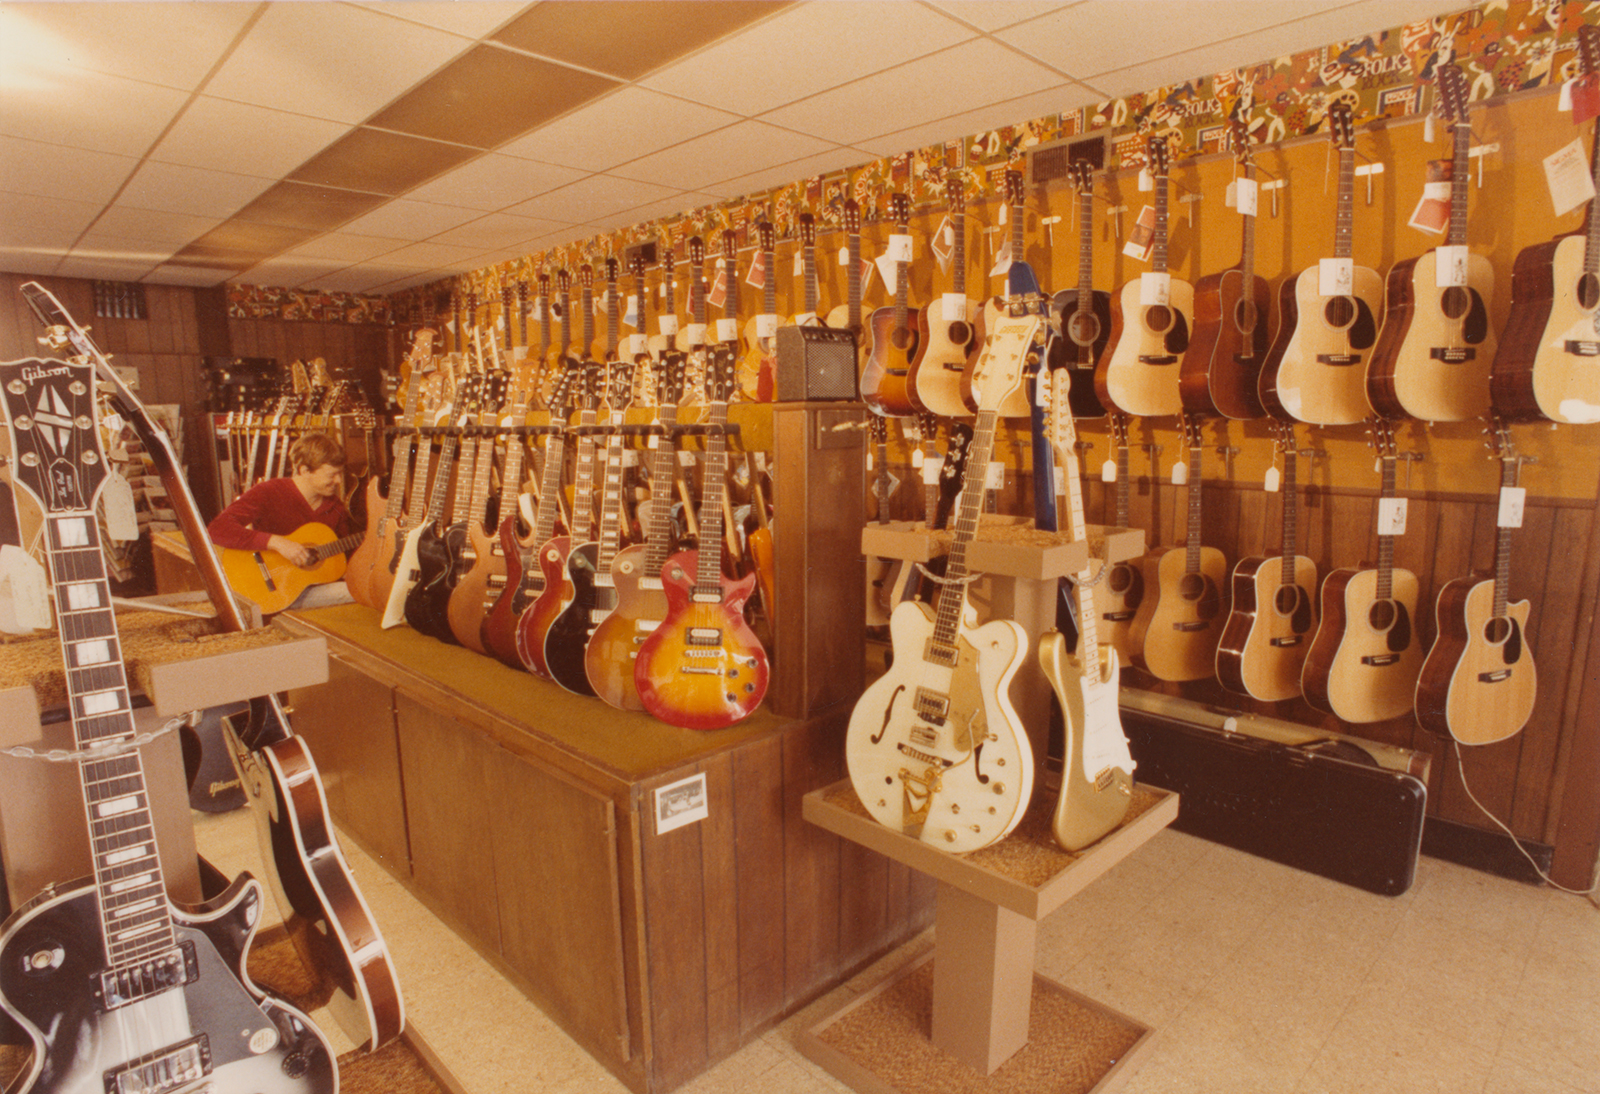 Strait Music Expansion Storefront Guitars